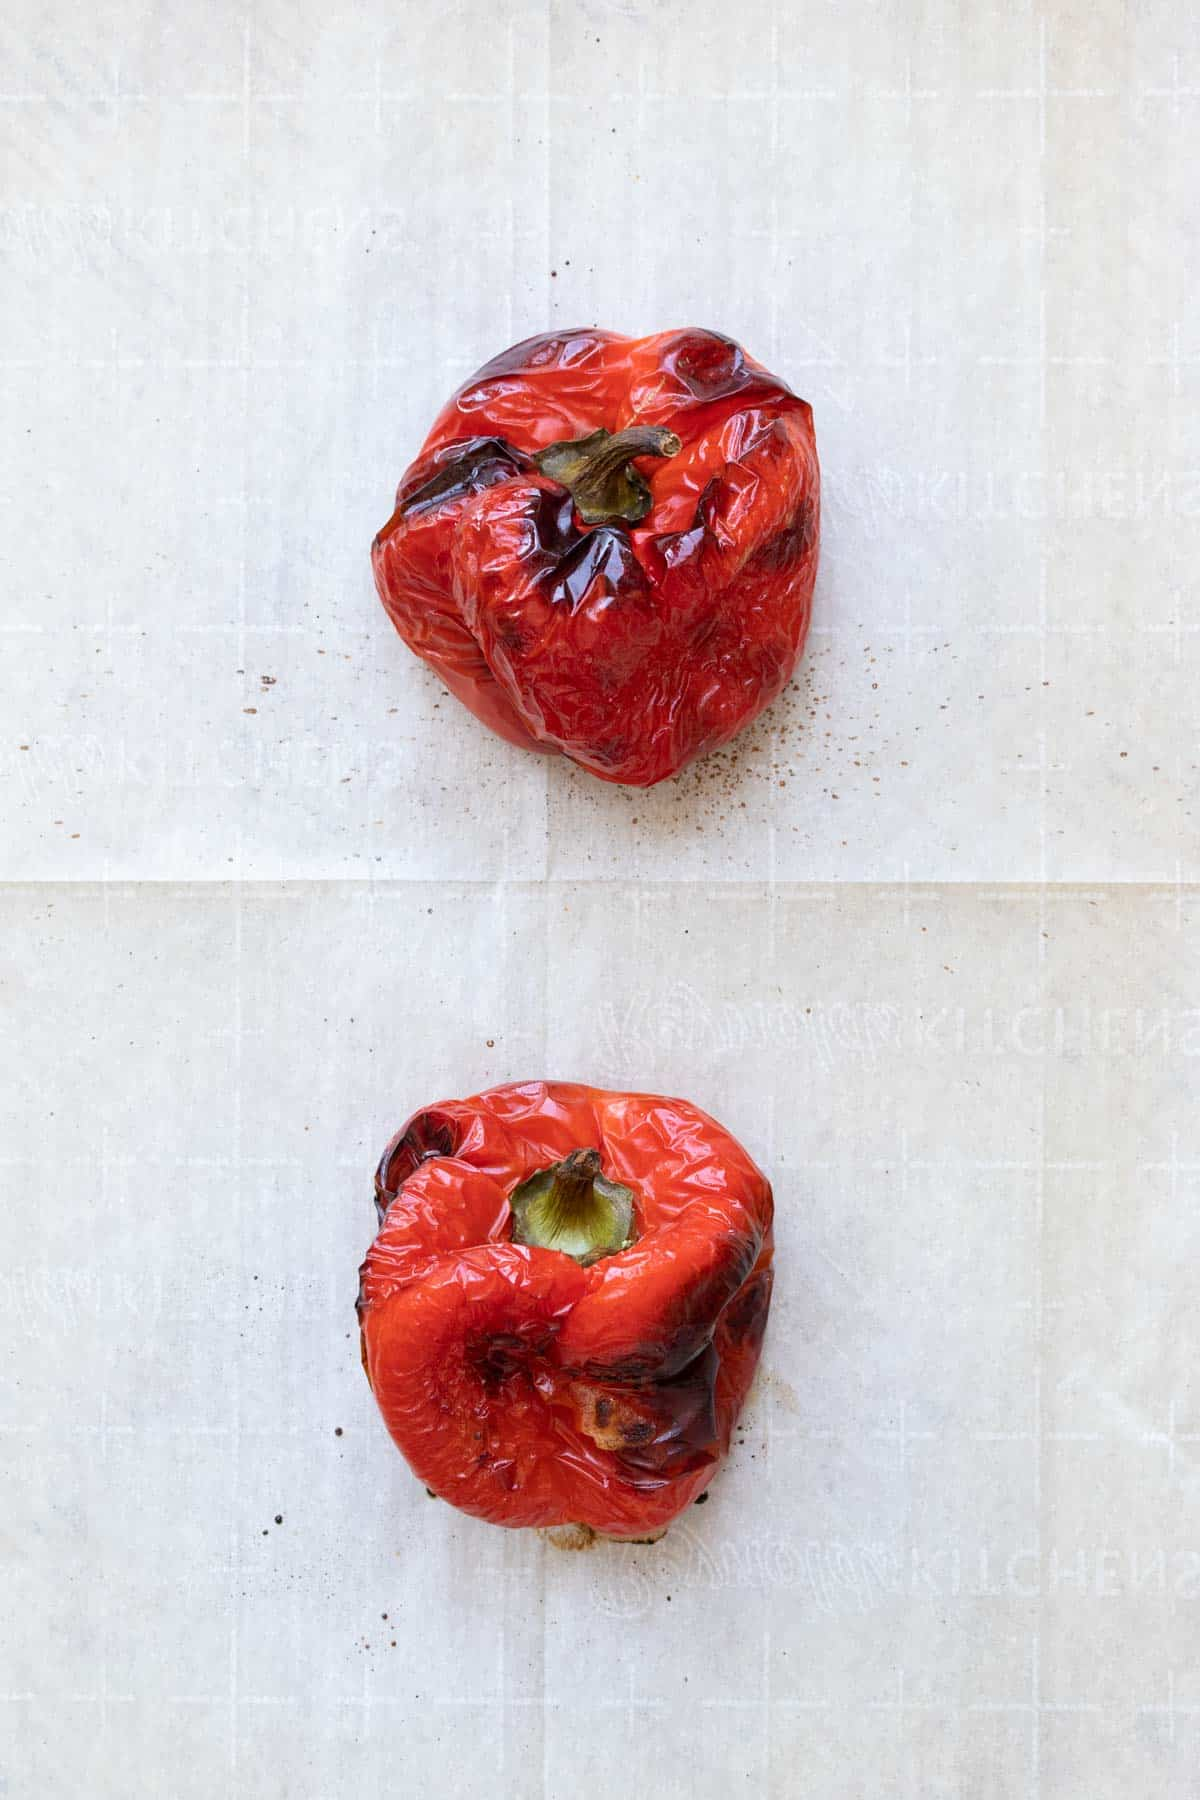 Two roasted red peppers on parchment paper